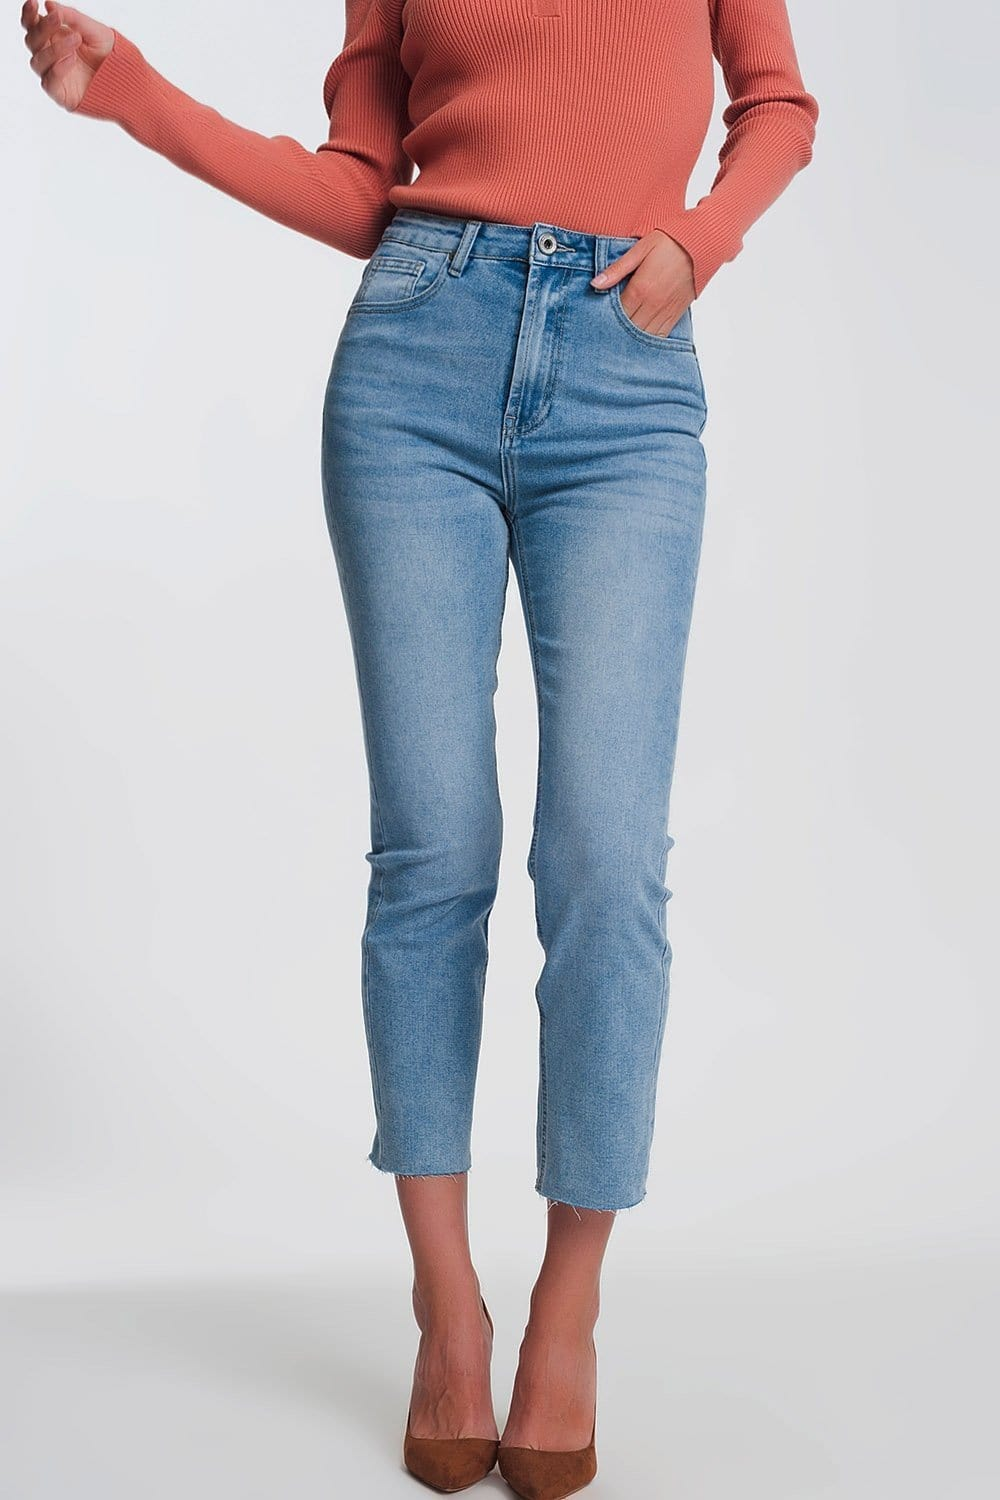 Q2 Straight leg jeans in light blue with raw hem